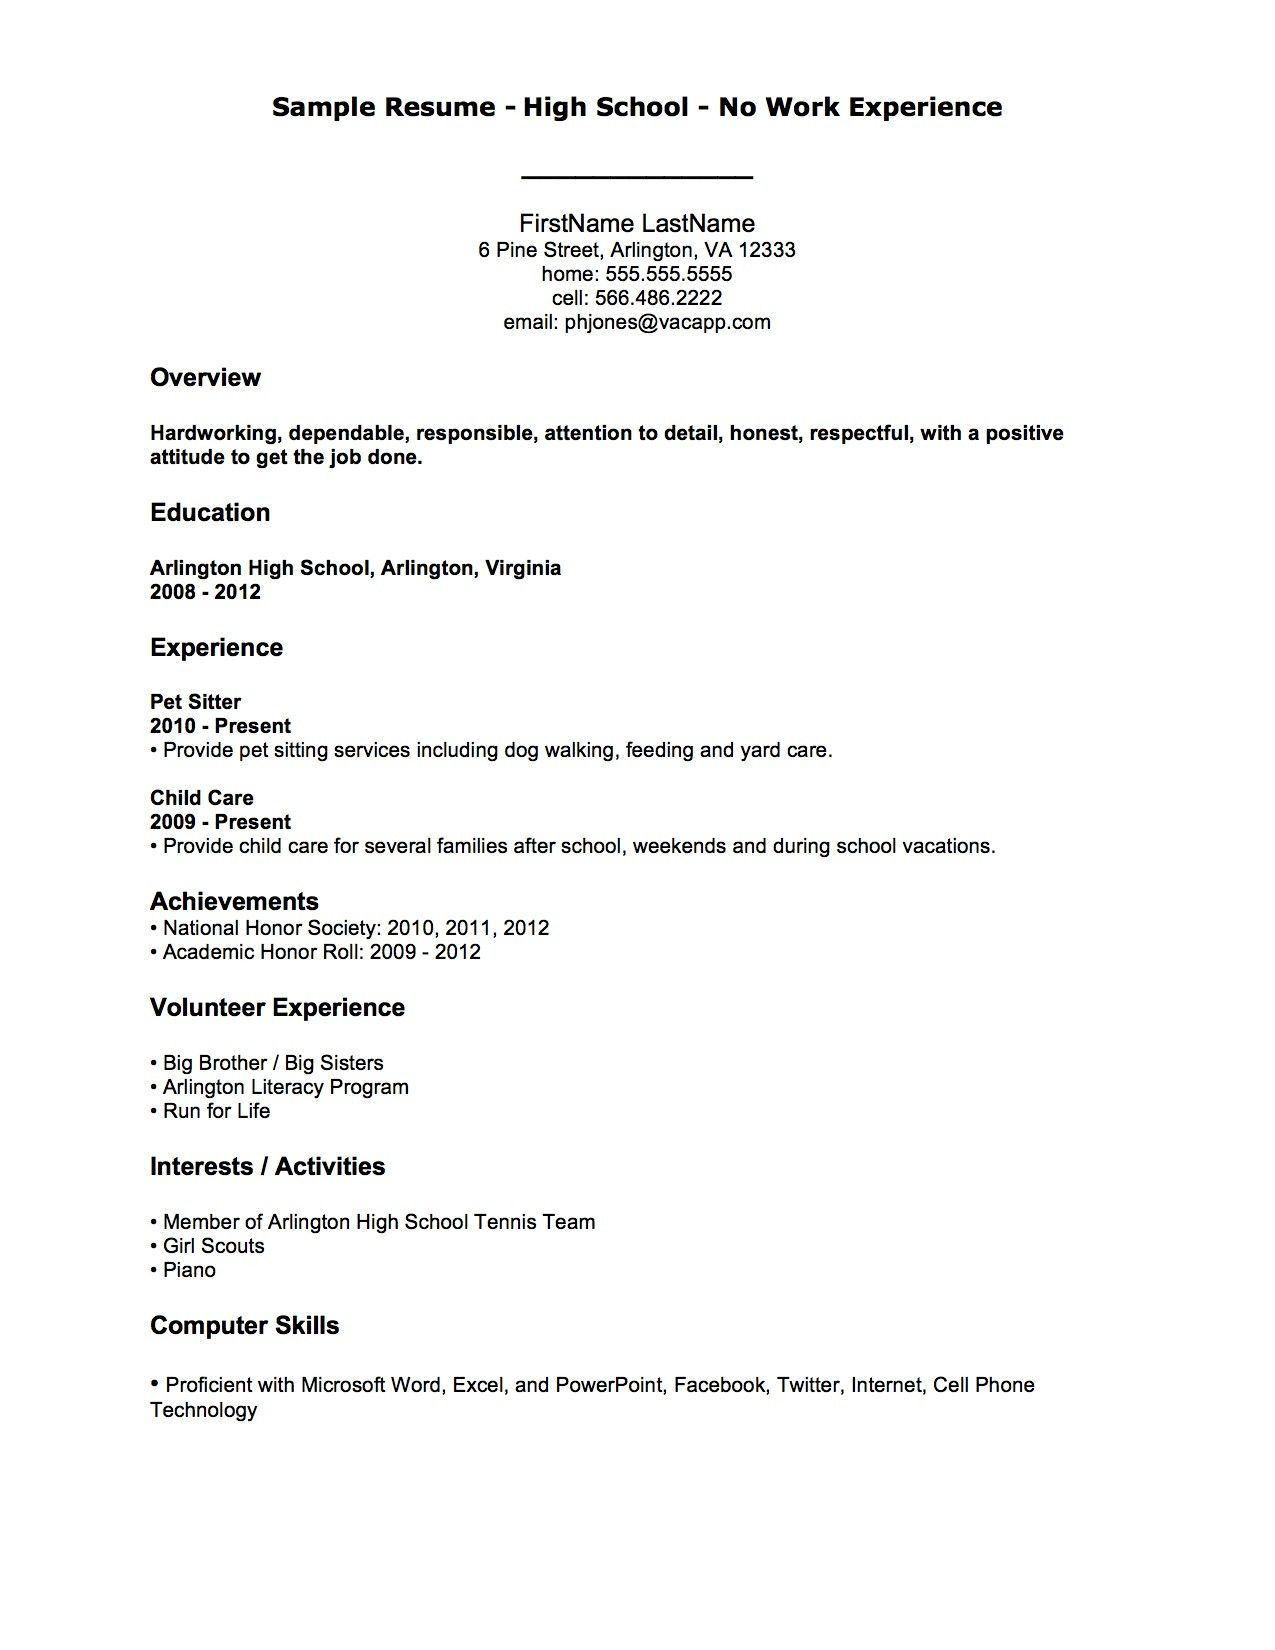 Example Of A Resume For A Job How To Write A Resume For A Job With No Experience  Google Search